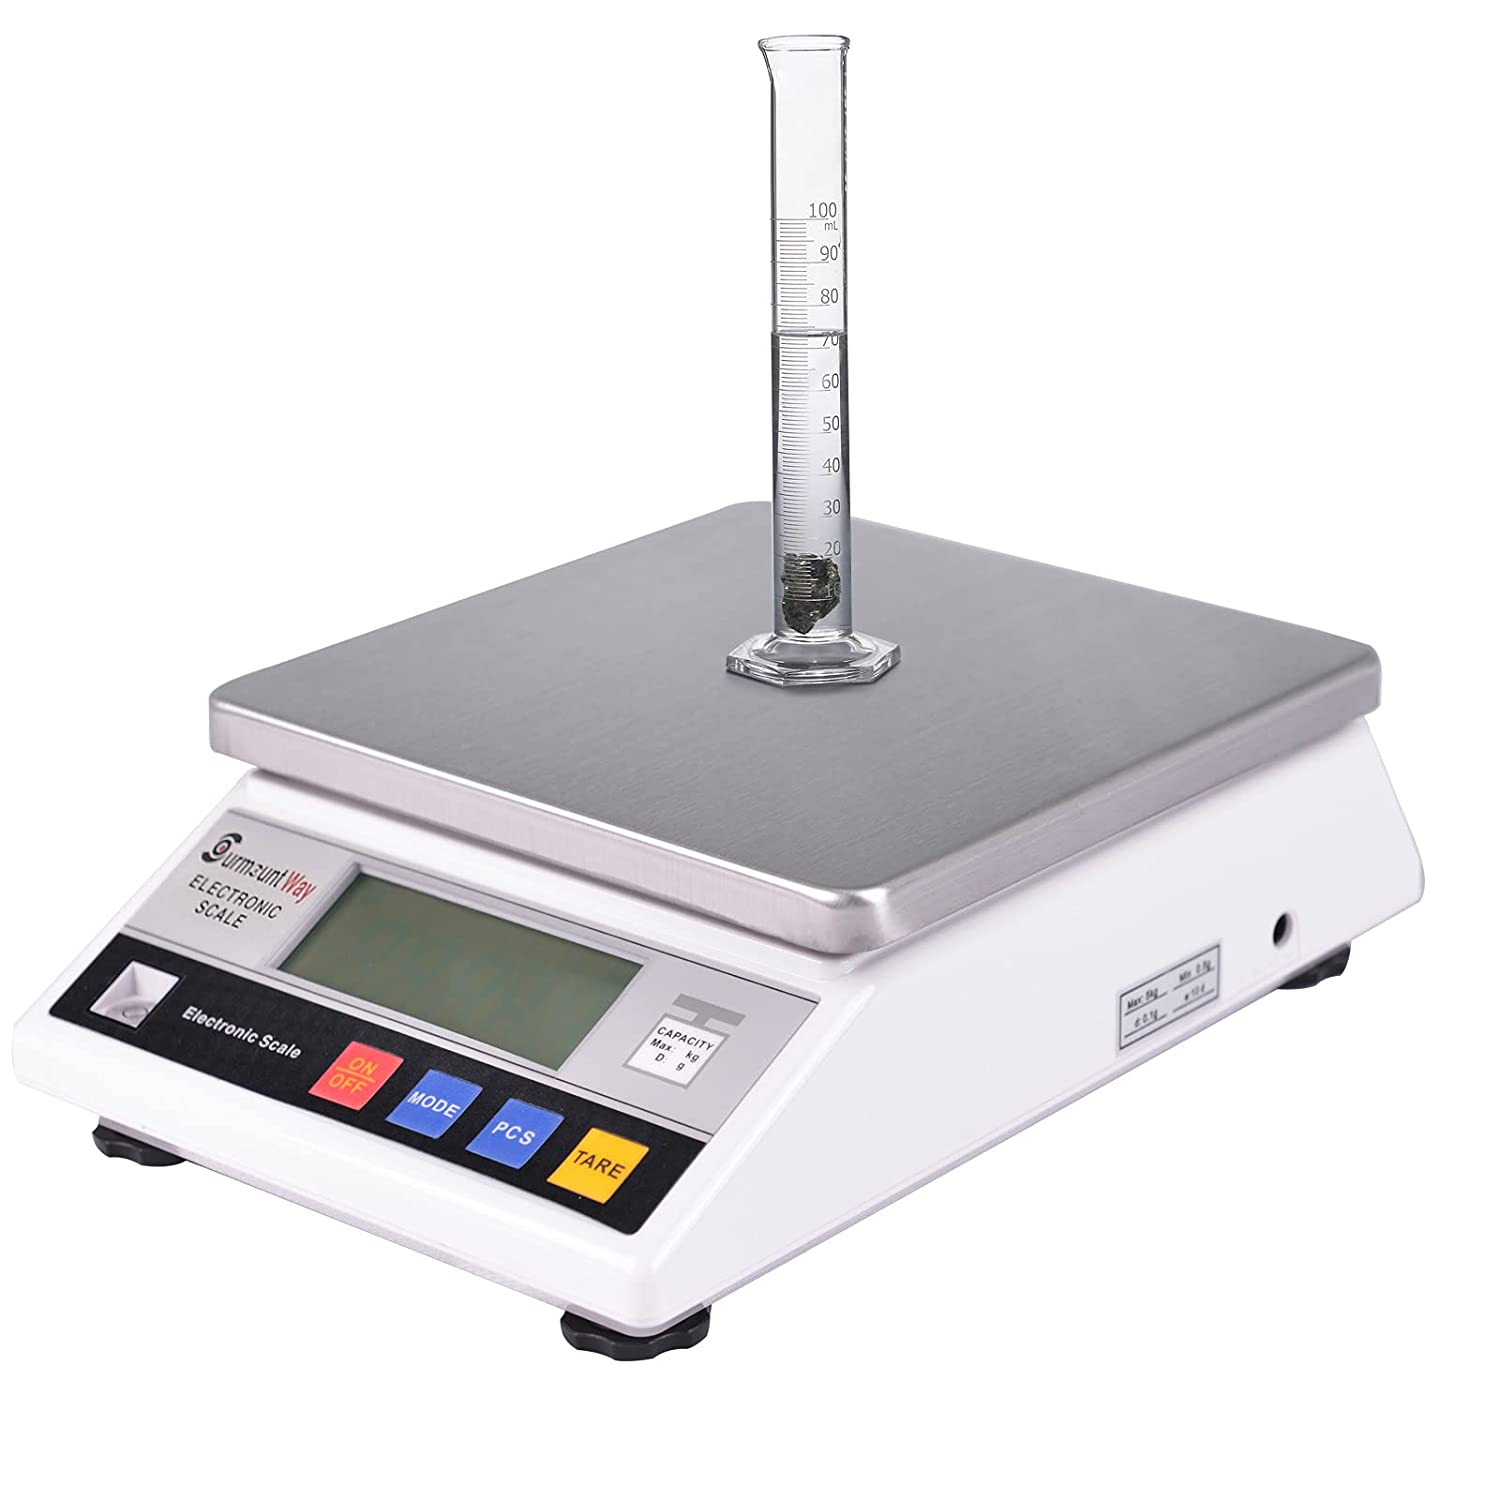 SurmountWay High Precision Scale 10kg x 0.1g Accurate Digtal Laboratory Lab Industrial Scientific Electronic Scale Commerical Counting Kitchen Scales Jewelry Gold Analytical Weighing(10000g,0.1g)